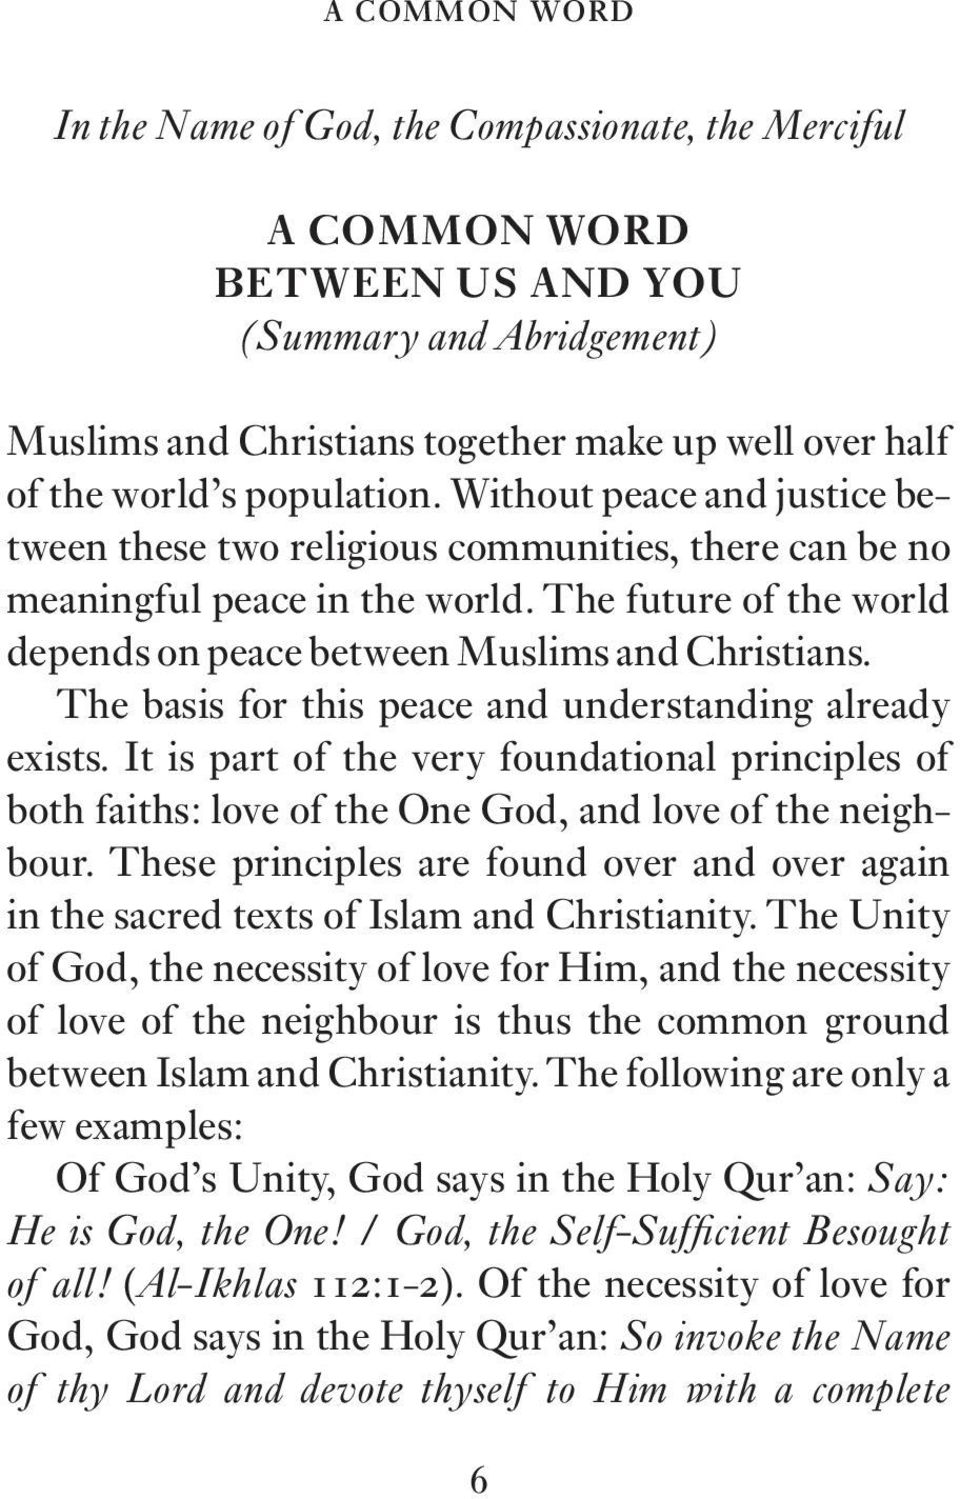 The basis for this peace and understanding already exists. It is part of the very foundational principles of both faiths: love of the One God, and love of the neighbour.